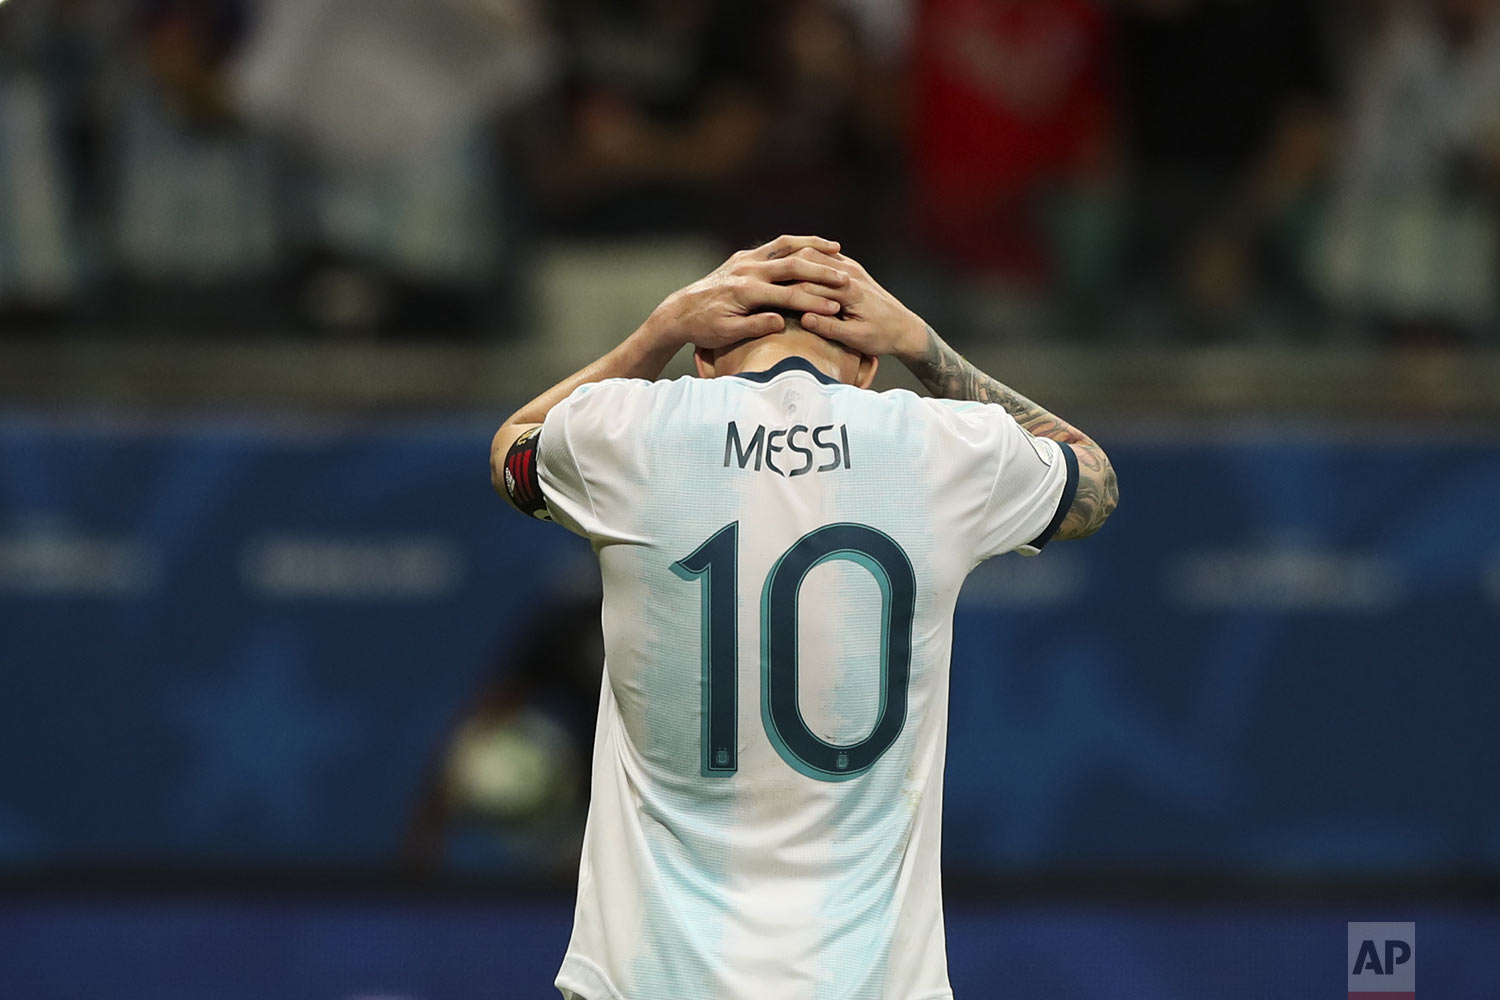 Argentina's Lionel Messi holds his head down after failing to score during a Copa America Group B soccer match against Colombia at  Arena Fonte Nova in Salvador, Brazil, Saturday, June 15, 2019. (AP Photo/Ricardo Mazalan)